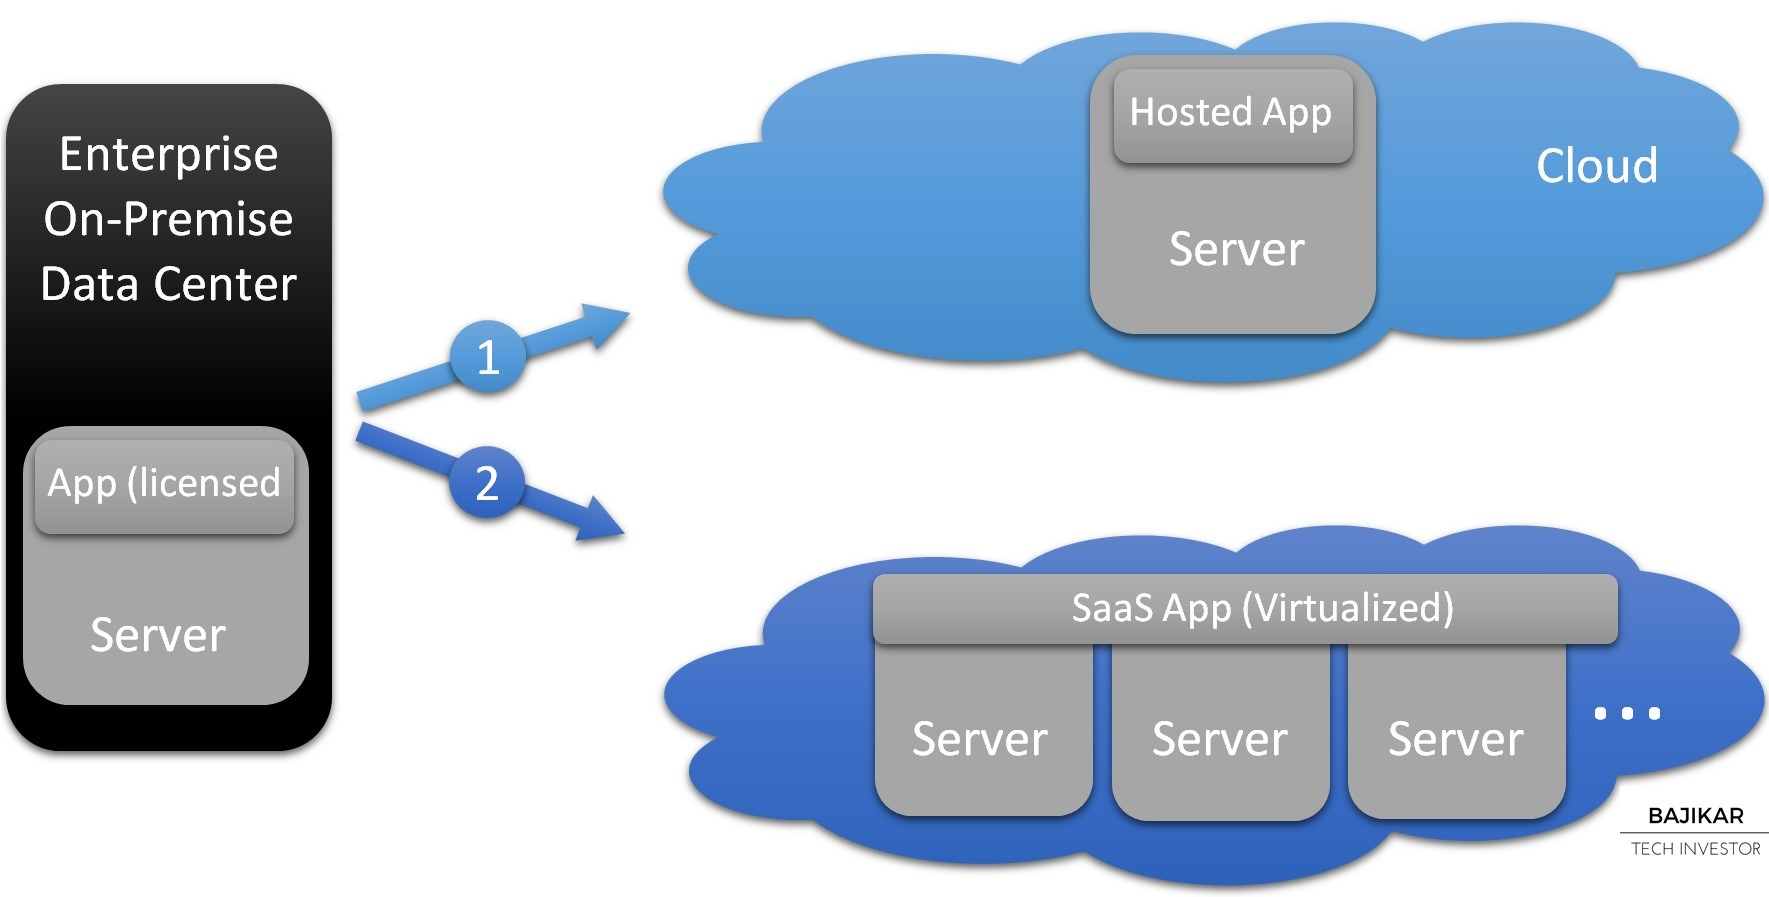 SaaS vs. Hosted Cloud Apps